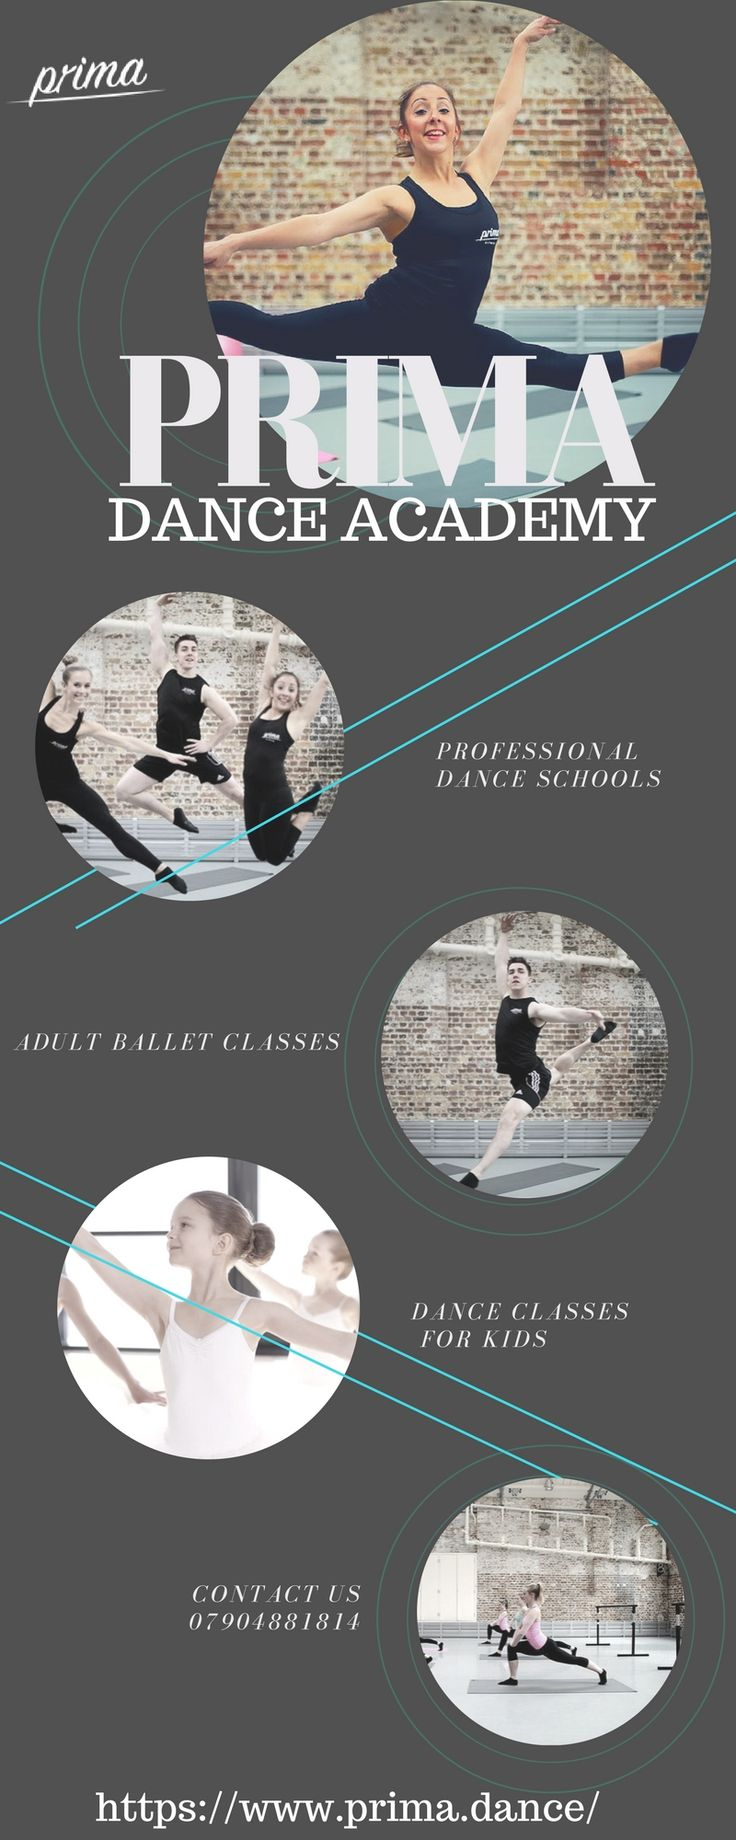 Prima Dance Academy is the Surrey Premier Professional Dance Schools for students of all ages. Register Now for Exciting Offers & get first free session at professional dance classes royal academy of dance.   Taster sessions are available for all new children.   #Professionaldanceschools #professionaldanceclasses #balletdanceclasses #royalacademyofdance #primadanceacademy #danceclassesforkidsnearme